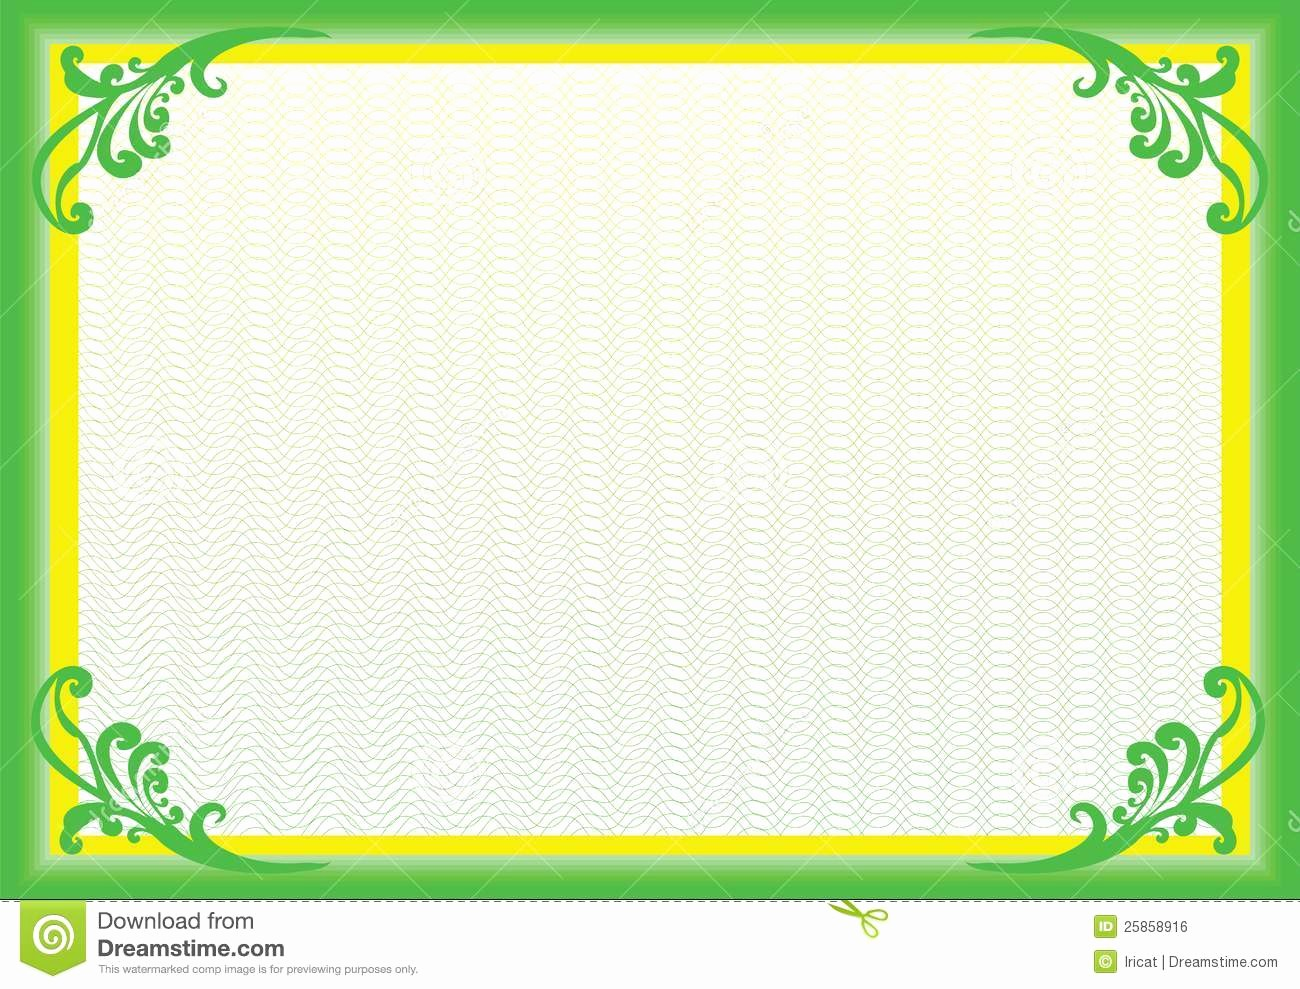 Certificate Background Design Free Download Awesome Certificate Background Stock Vector Illustration Of